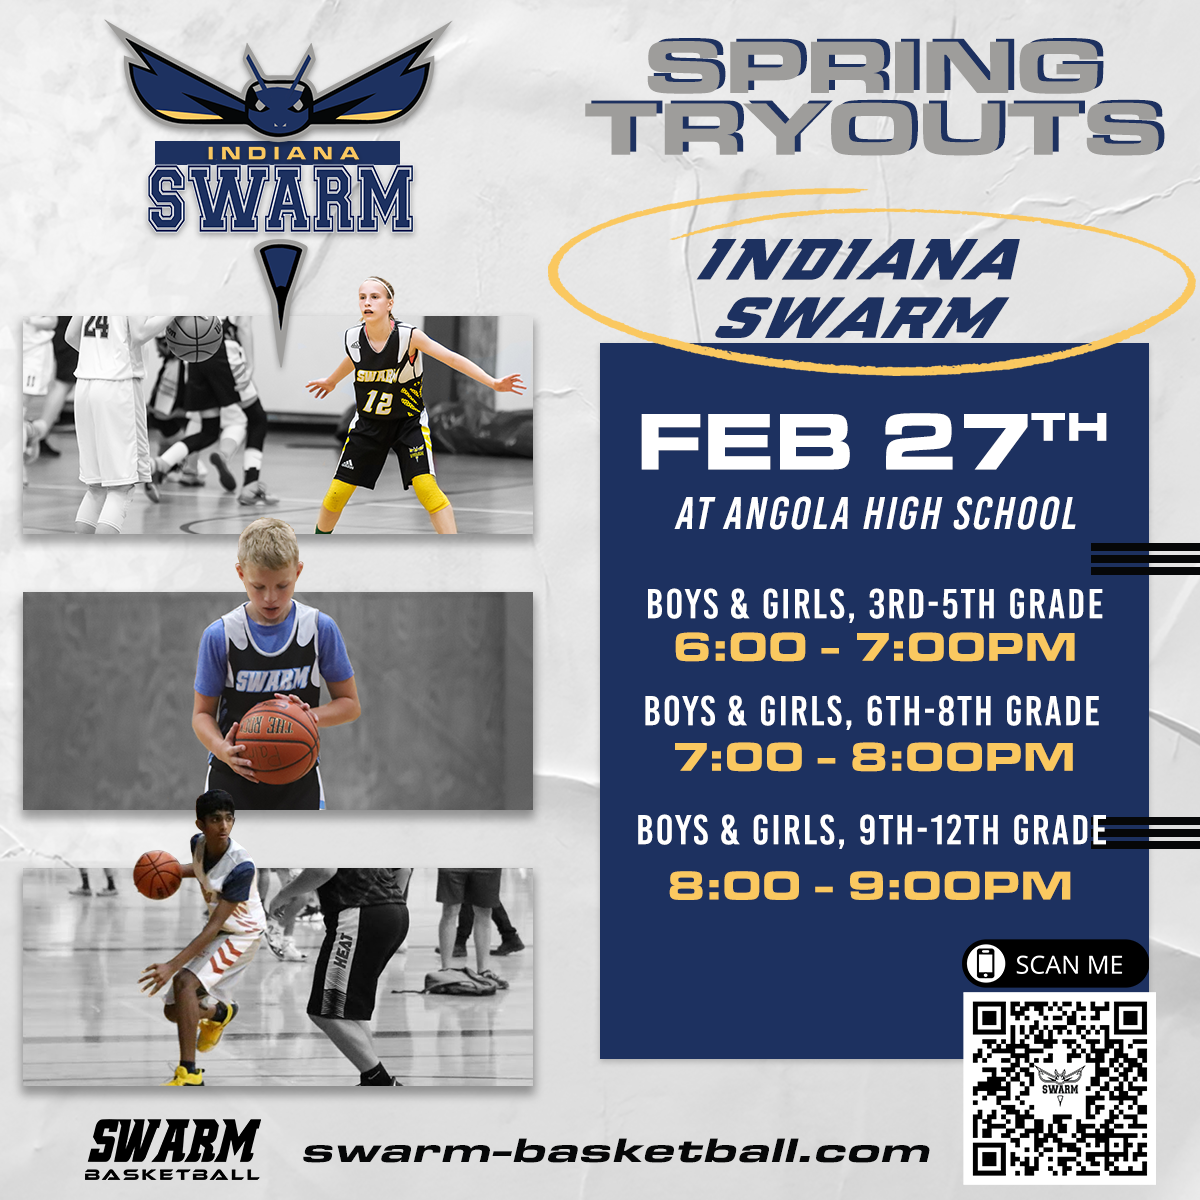 Spring21Tryouts_Indiana